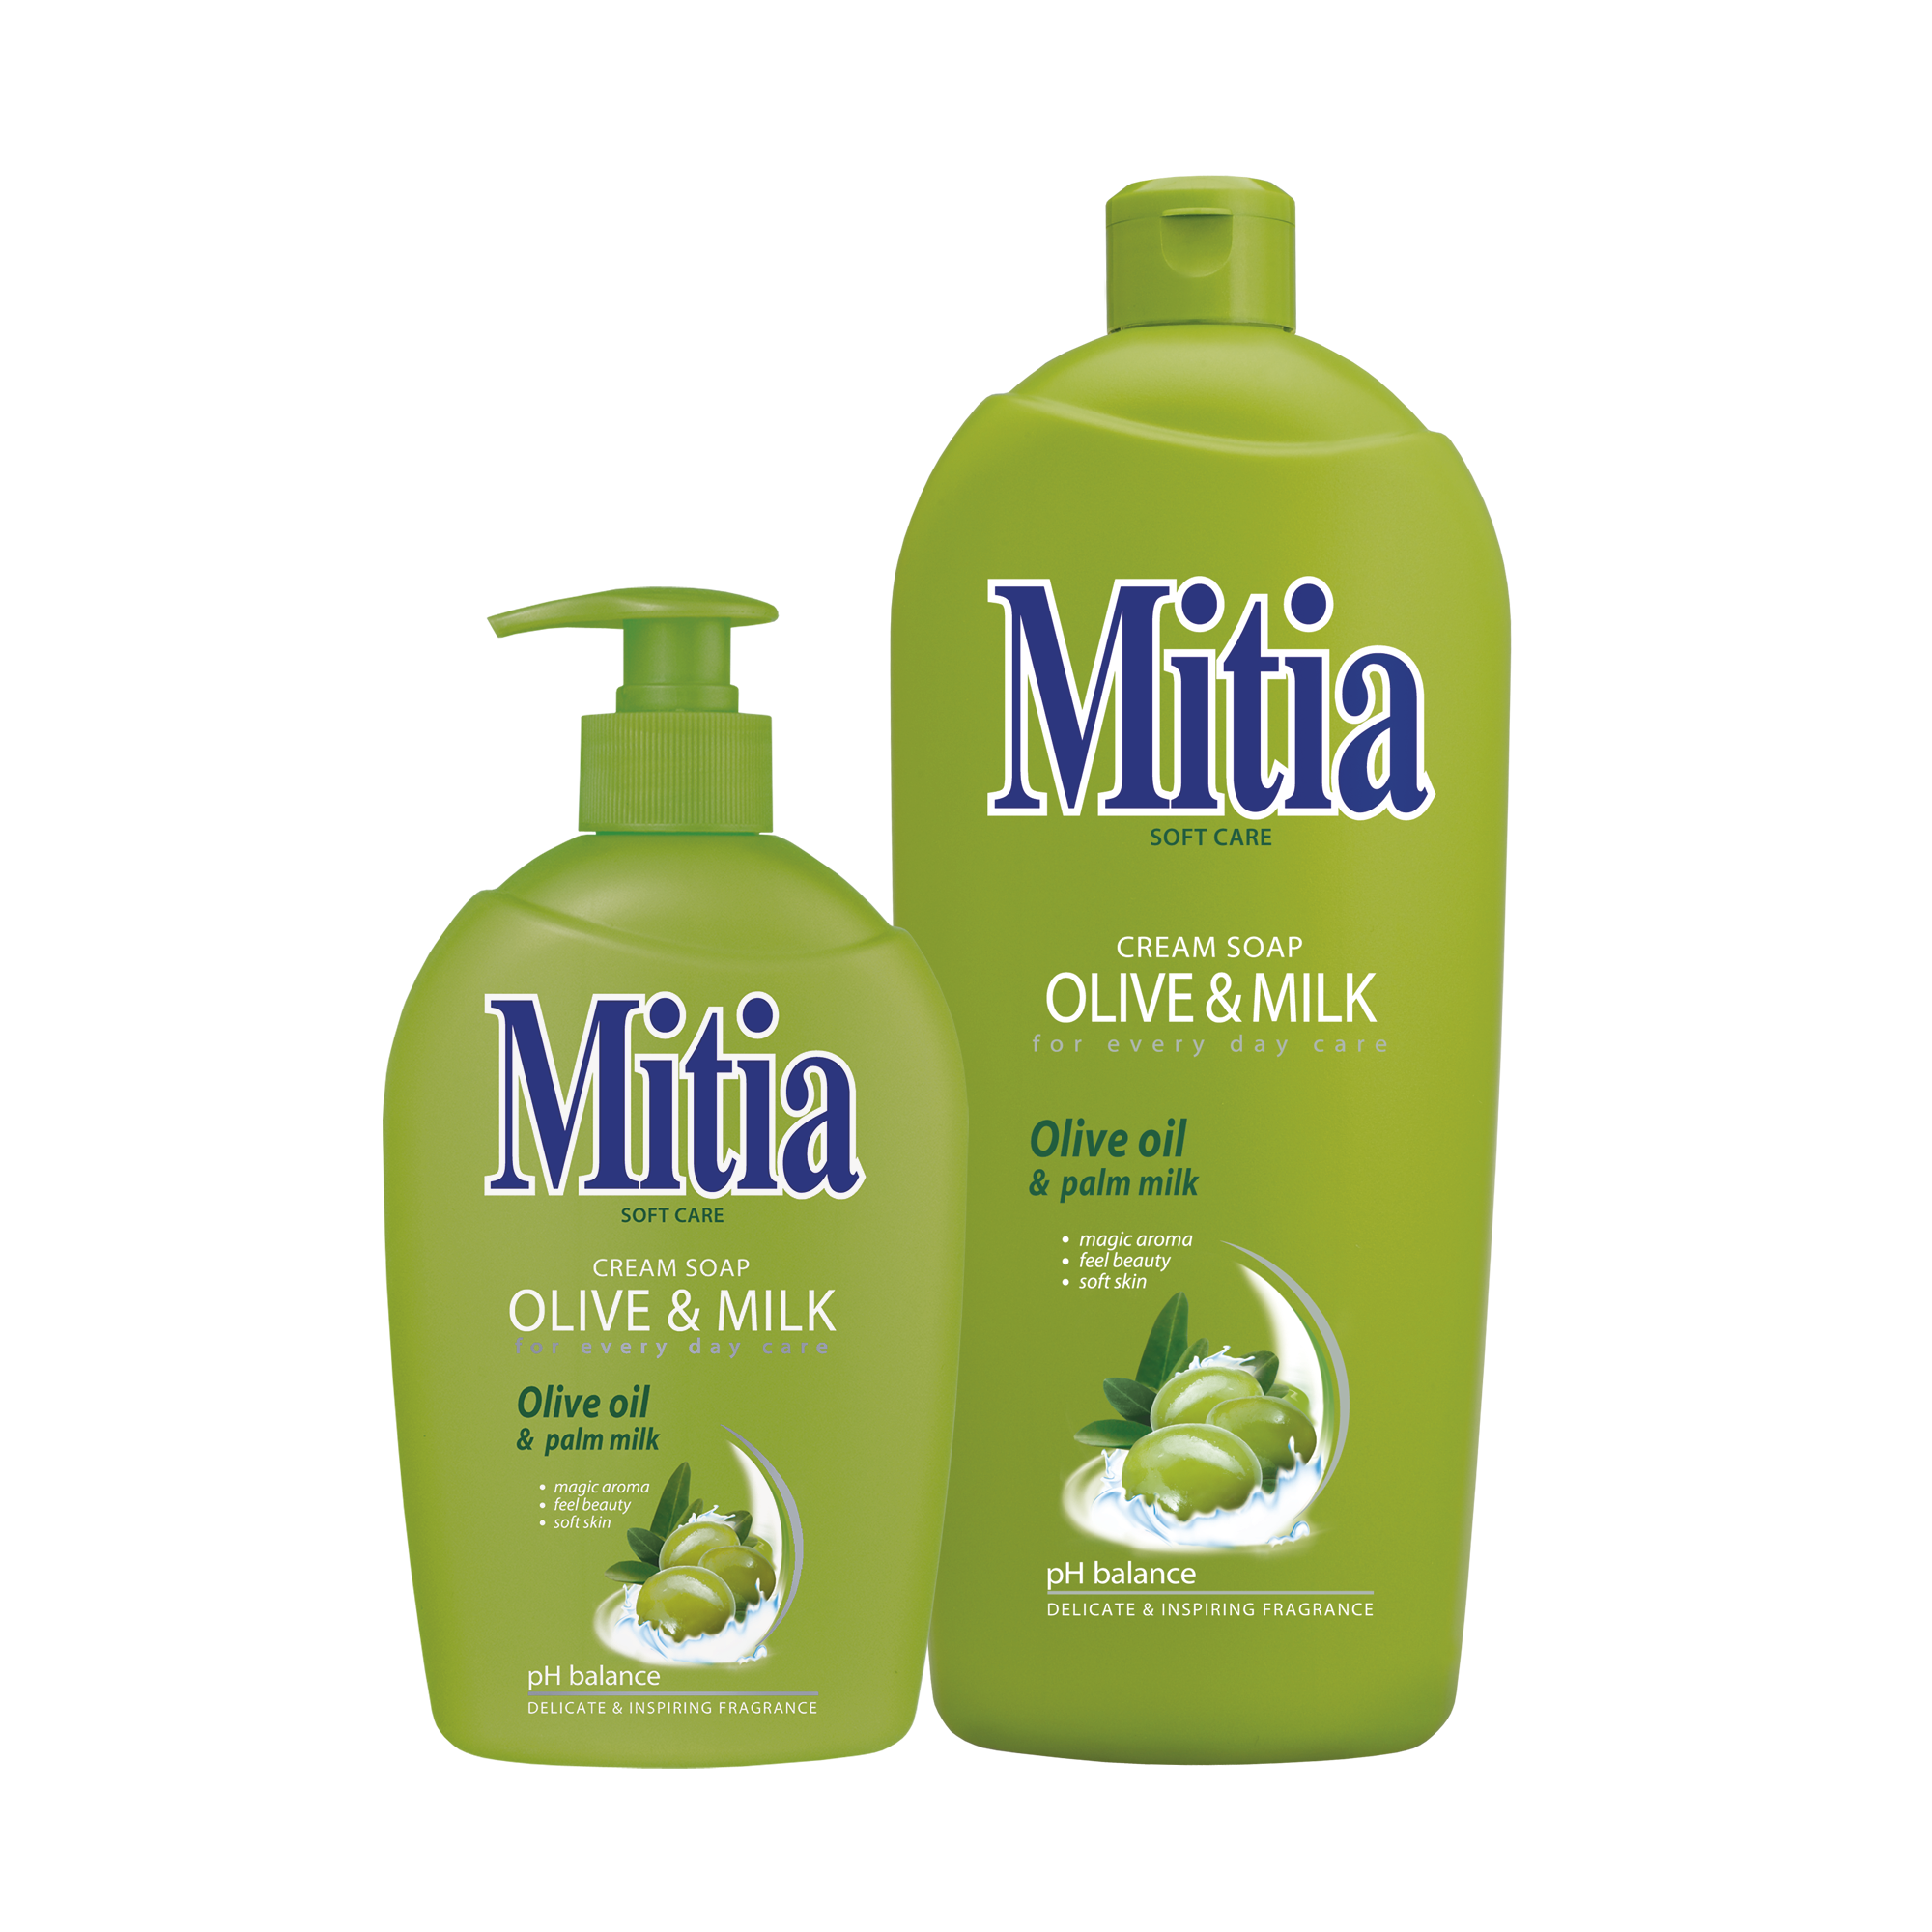 Mitia Olive & Milk liquid soap